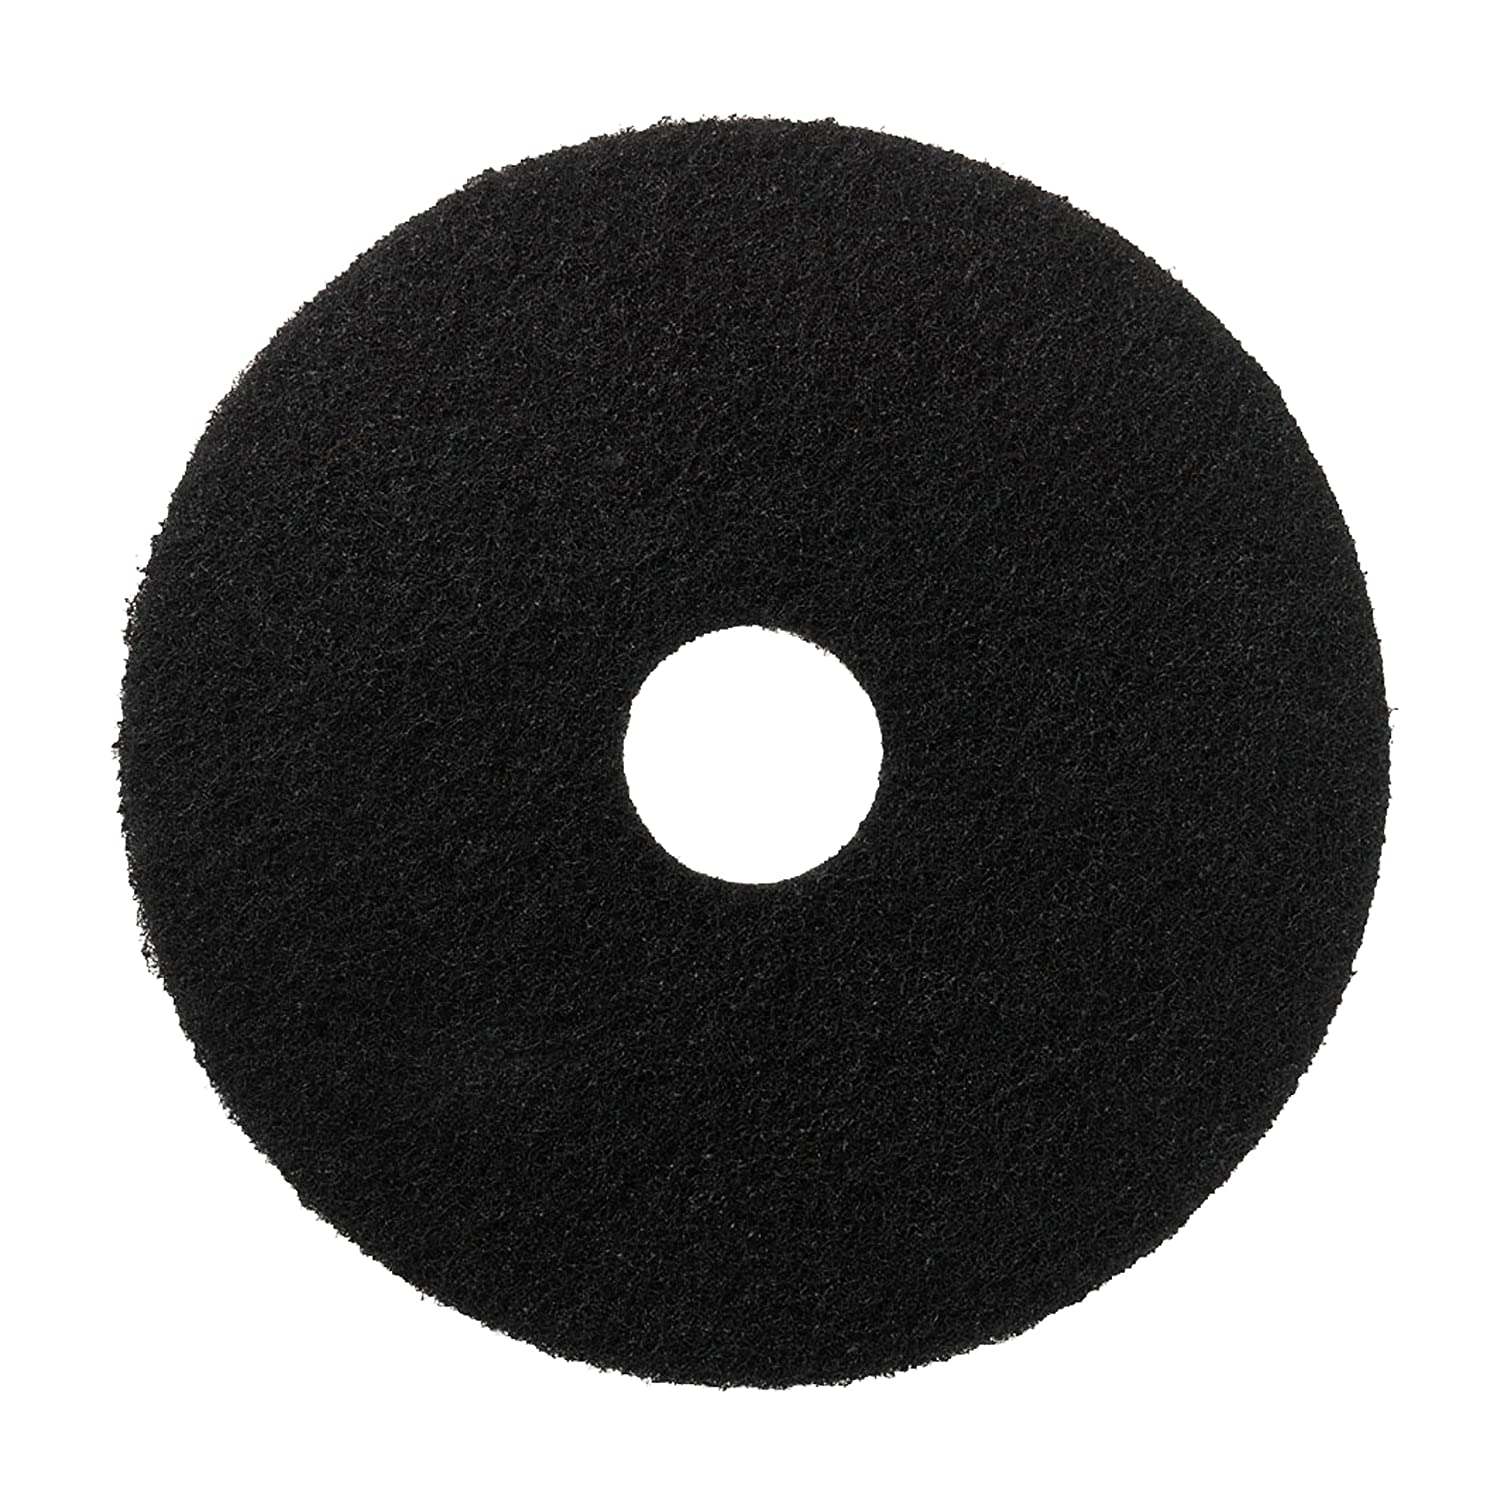 Scotch-Brite™ Floor Pads, Black, 254 mm, 5/Case 3M 7000077580